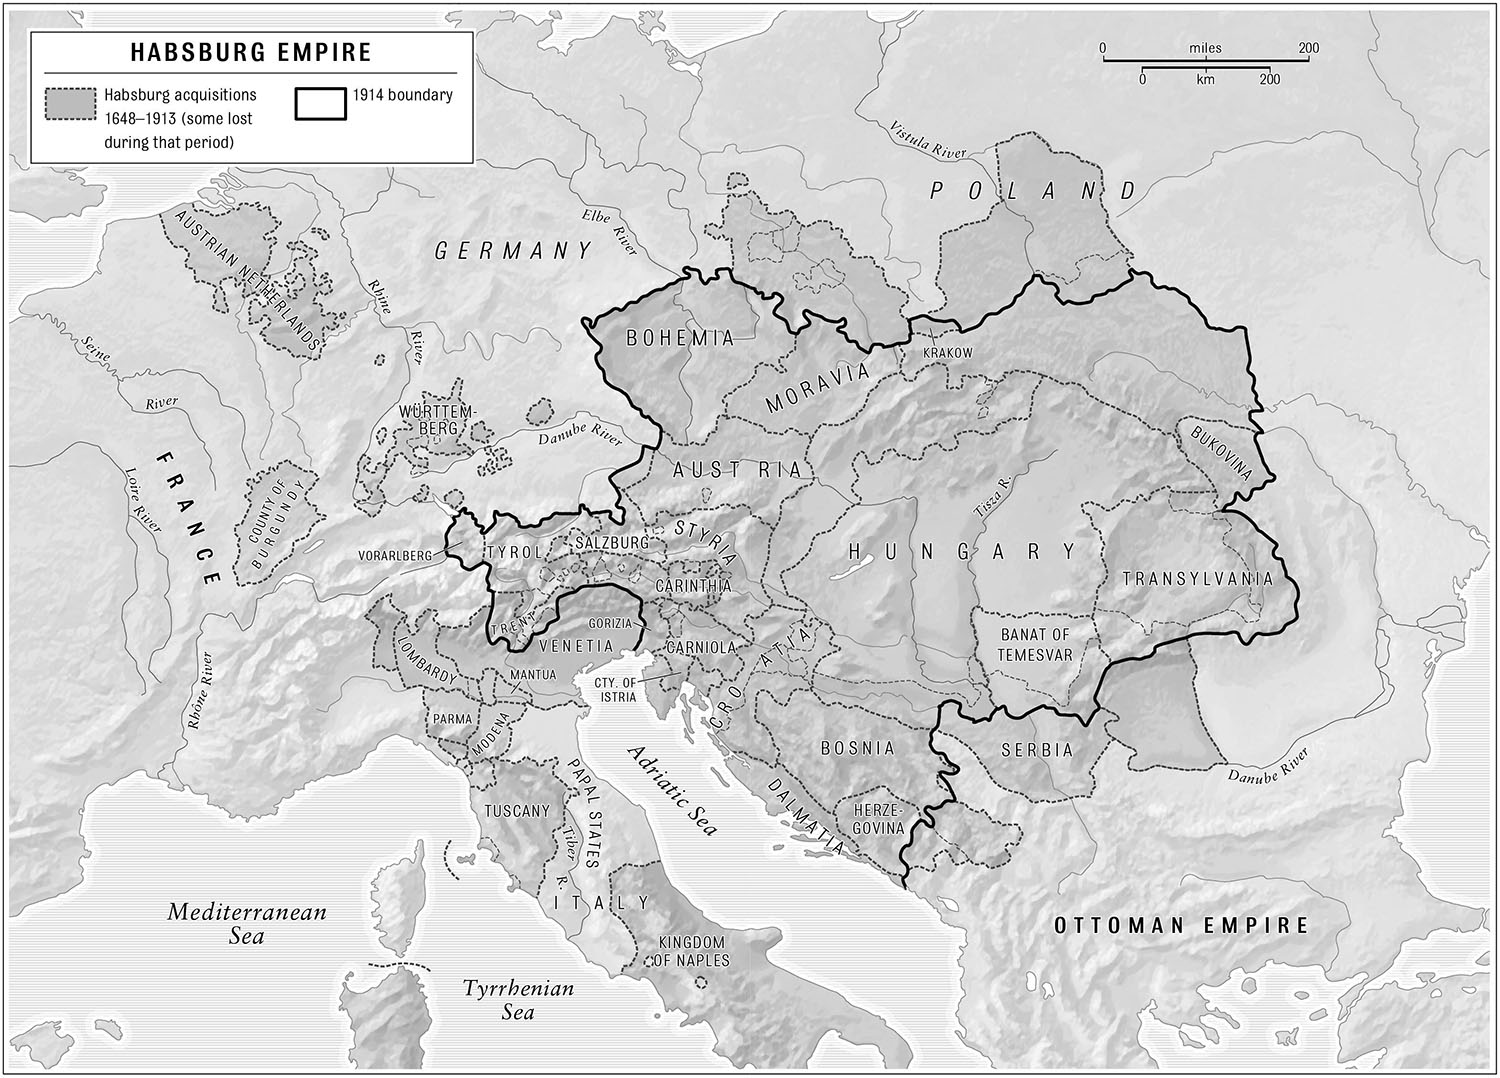 For    In Europe's Shadow: Two Cold Wars and a Thirty-Year Journey Through Romania and Beyond,  by Robert D. Kaplan   (Random House, 2016).    Map copyright © David Lindroth Inc..